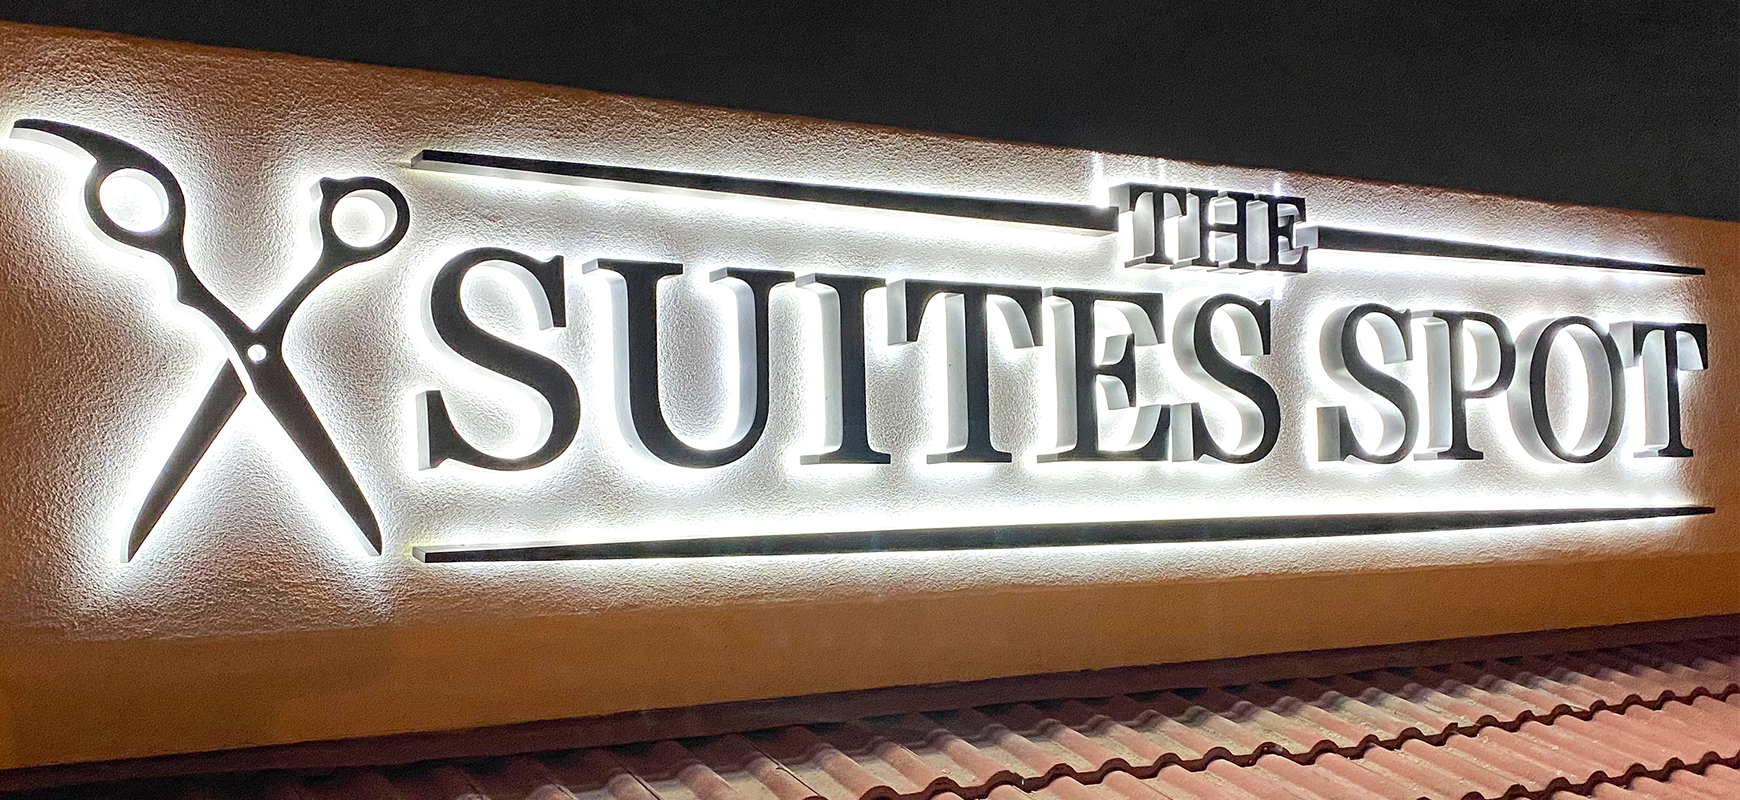 The Suites Spot backlit letter sign in a custom style made of aluminum and acrylic